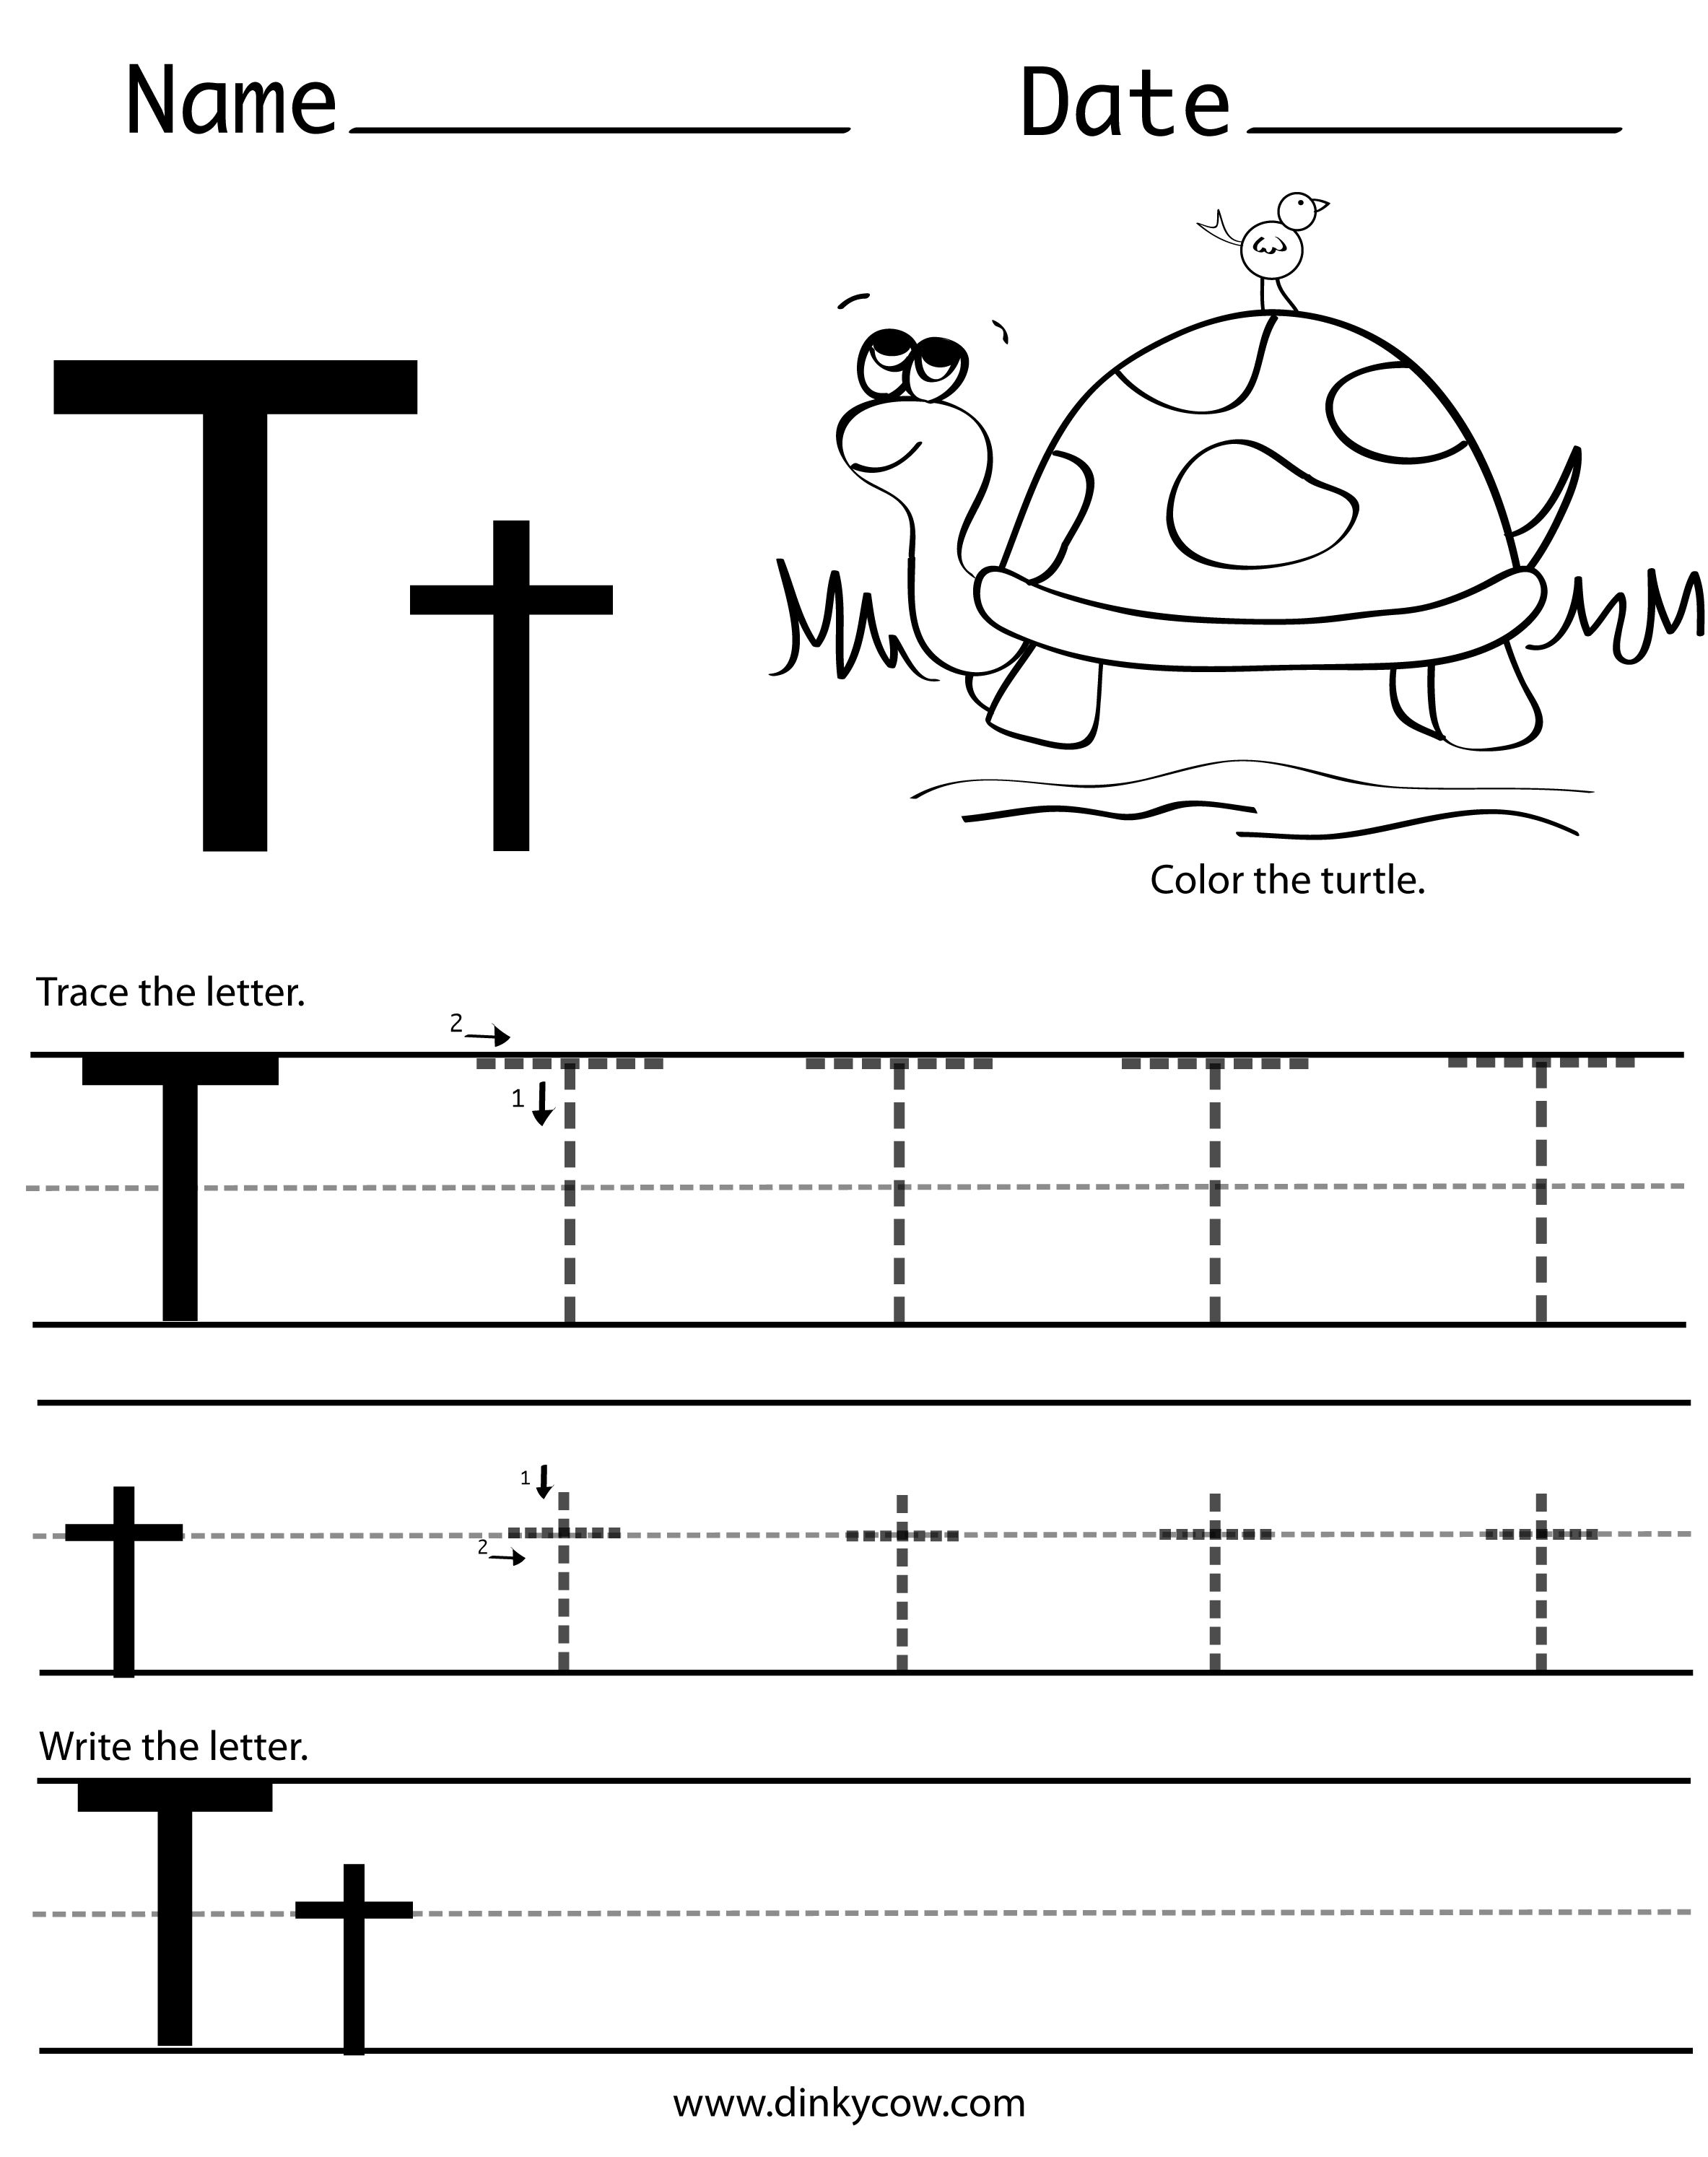 Best Abc Worksheets Ideas Free Alphabet